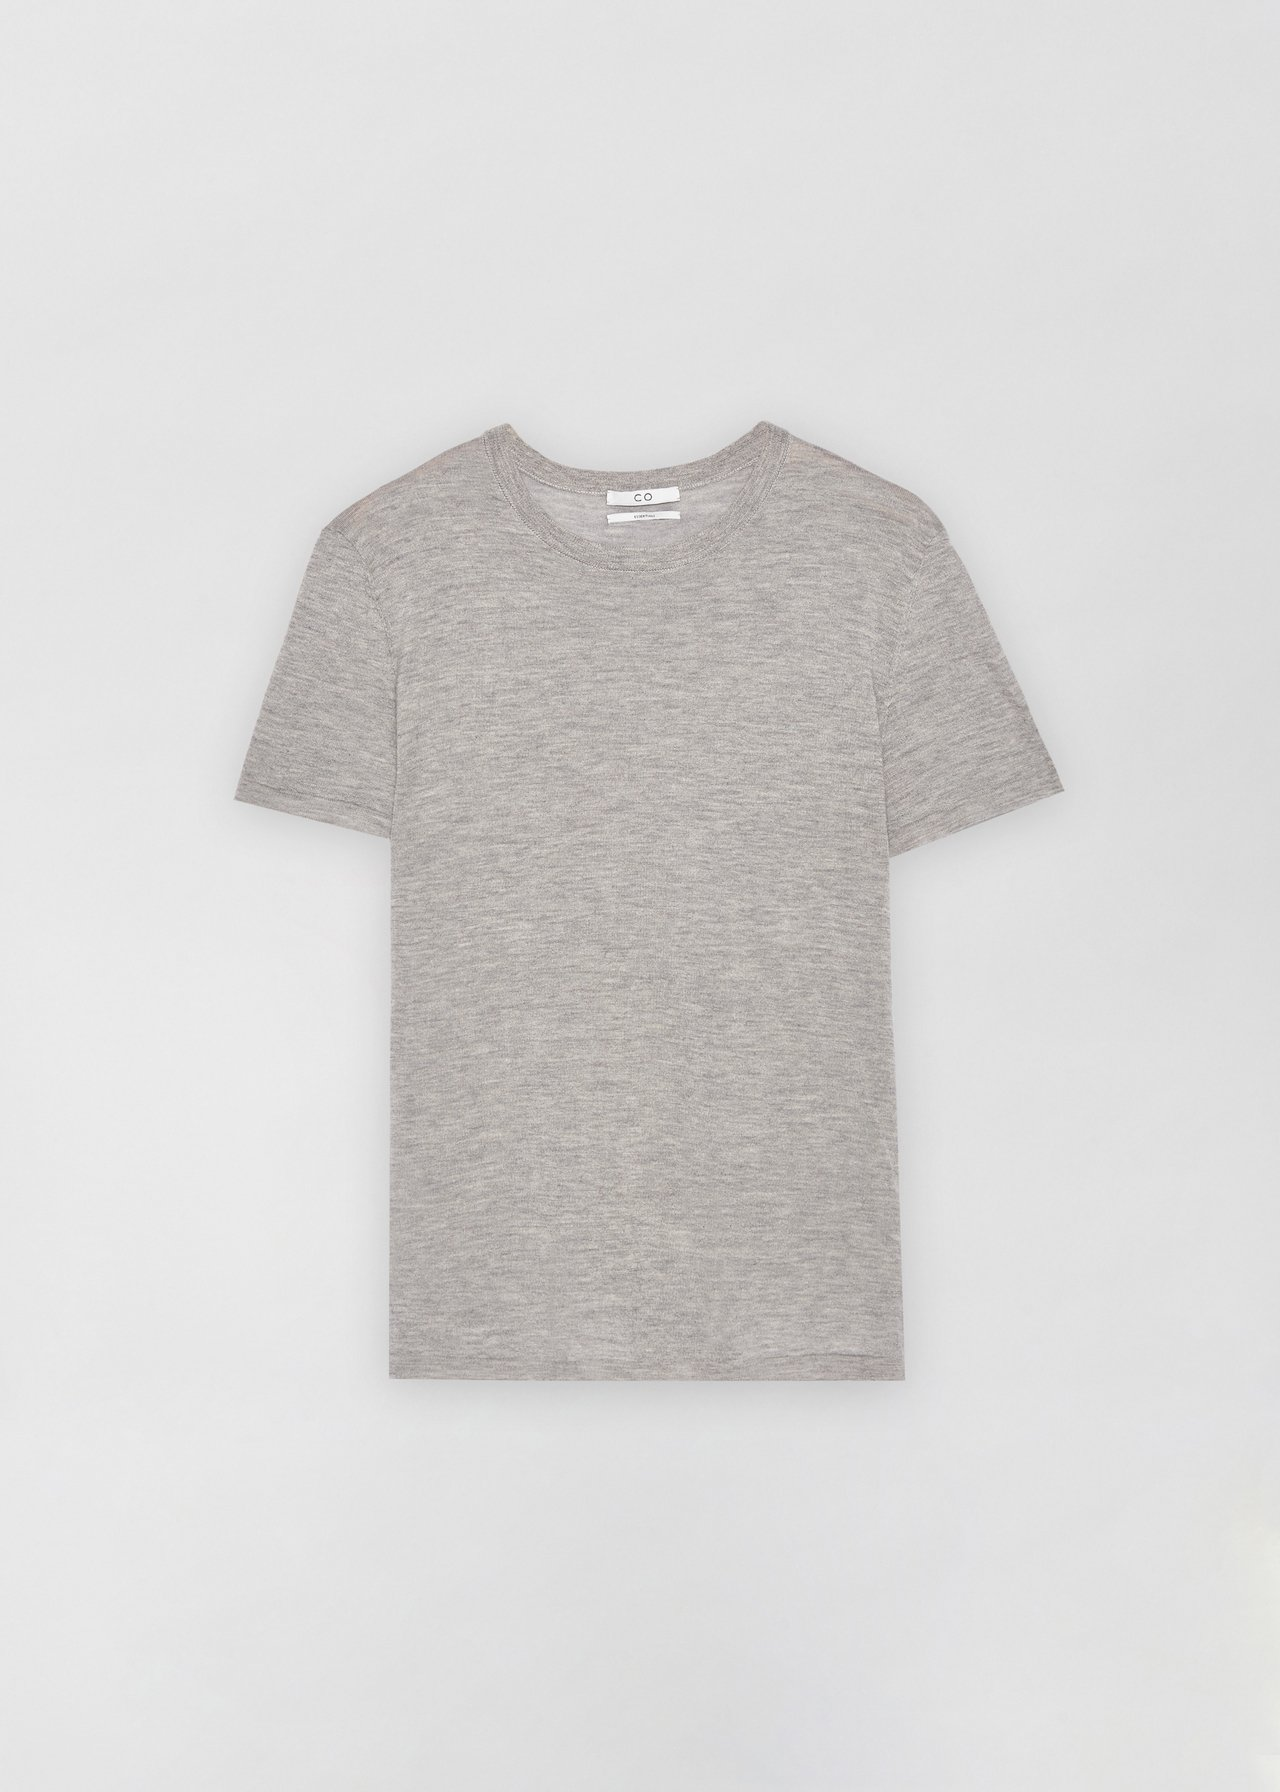 Cashmere T-Shirt - Black in Heather by Co Collections